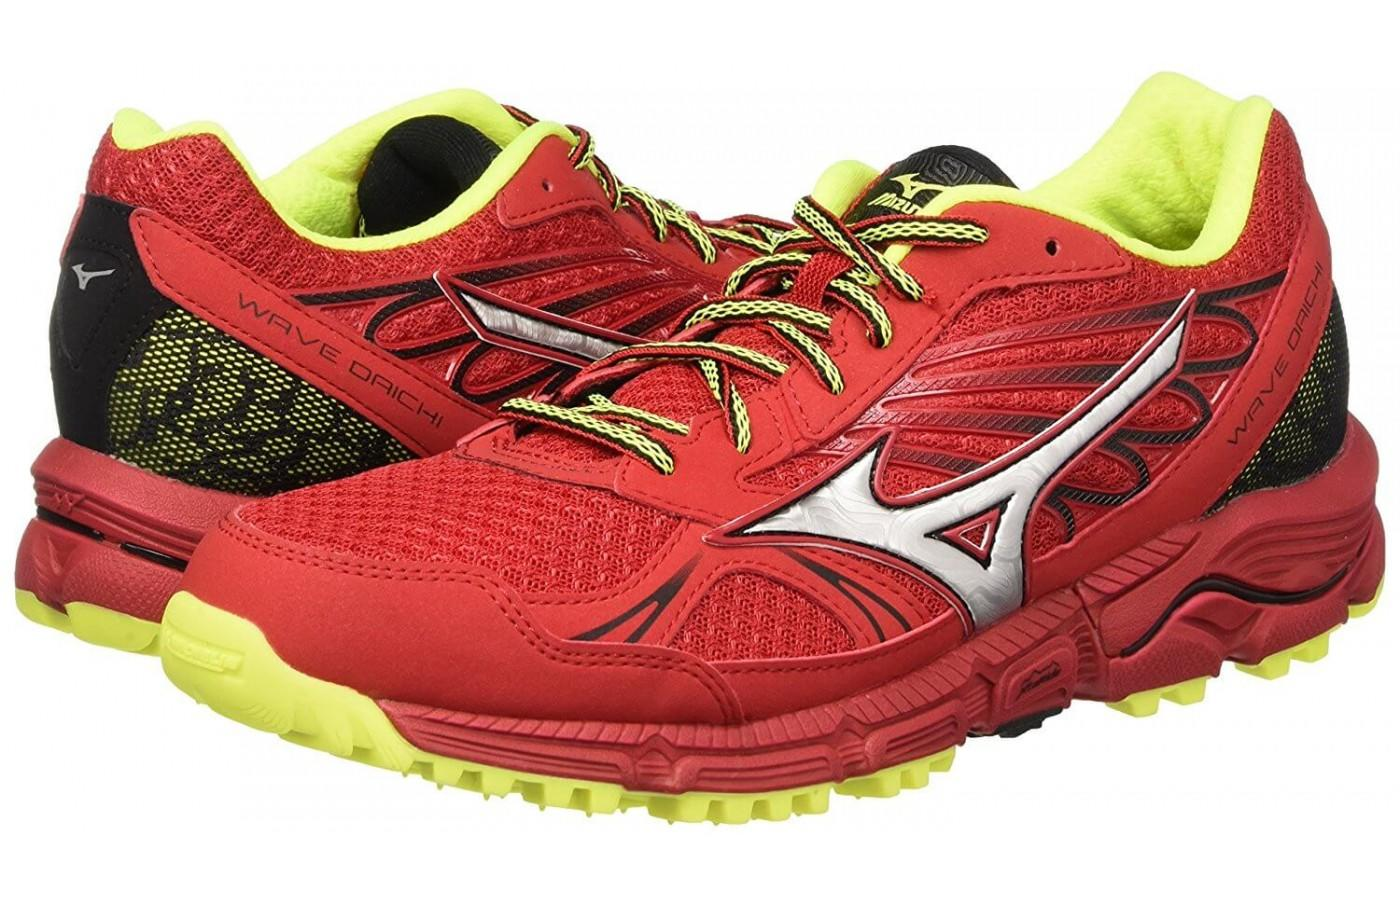 The Wave Daichi is an excellent trail running shoe